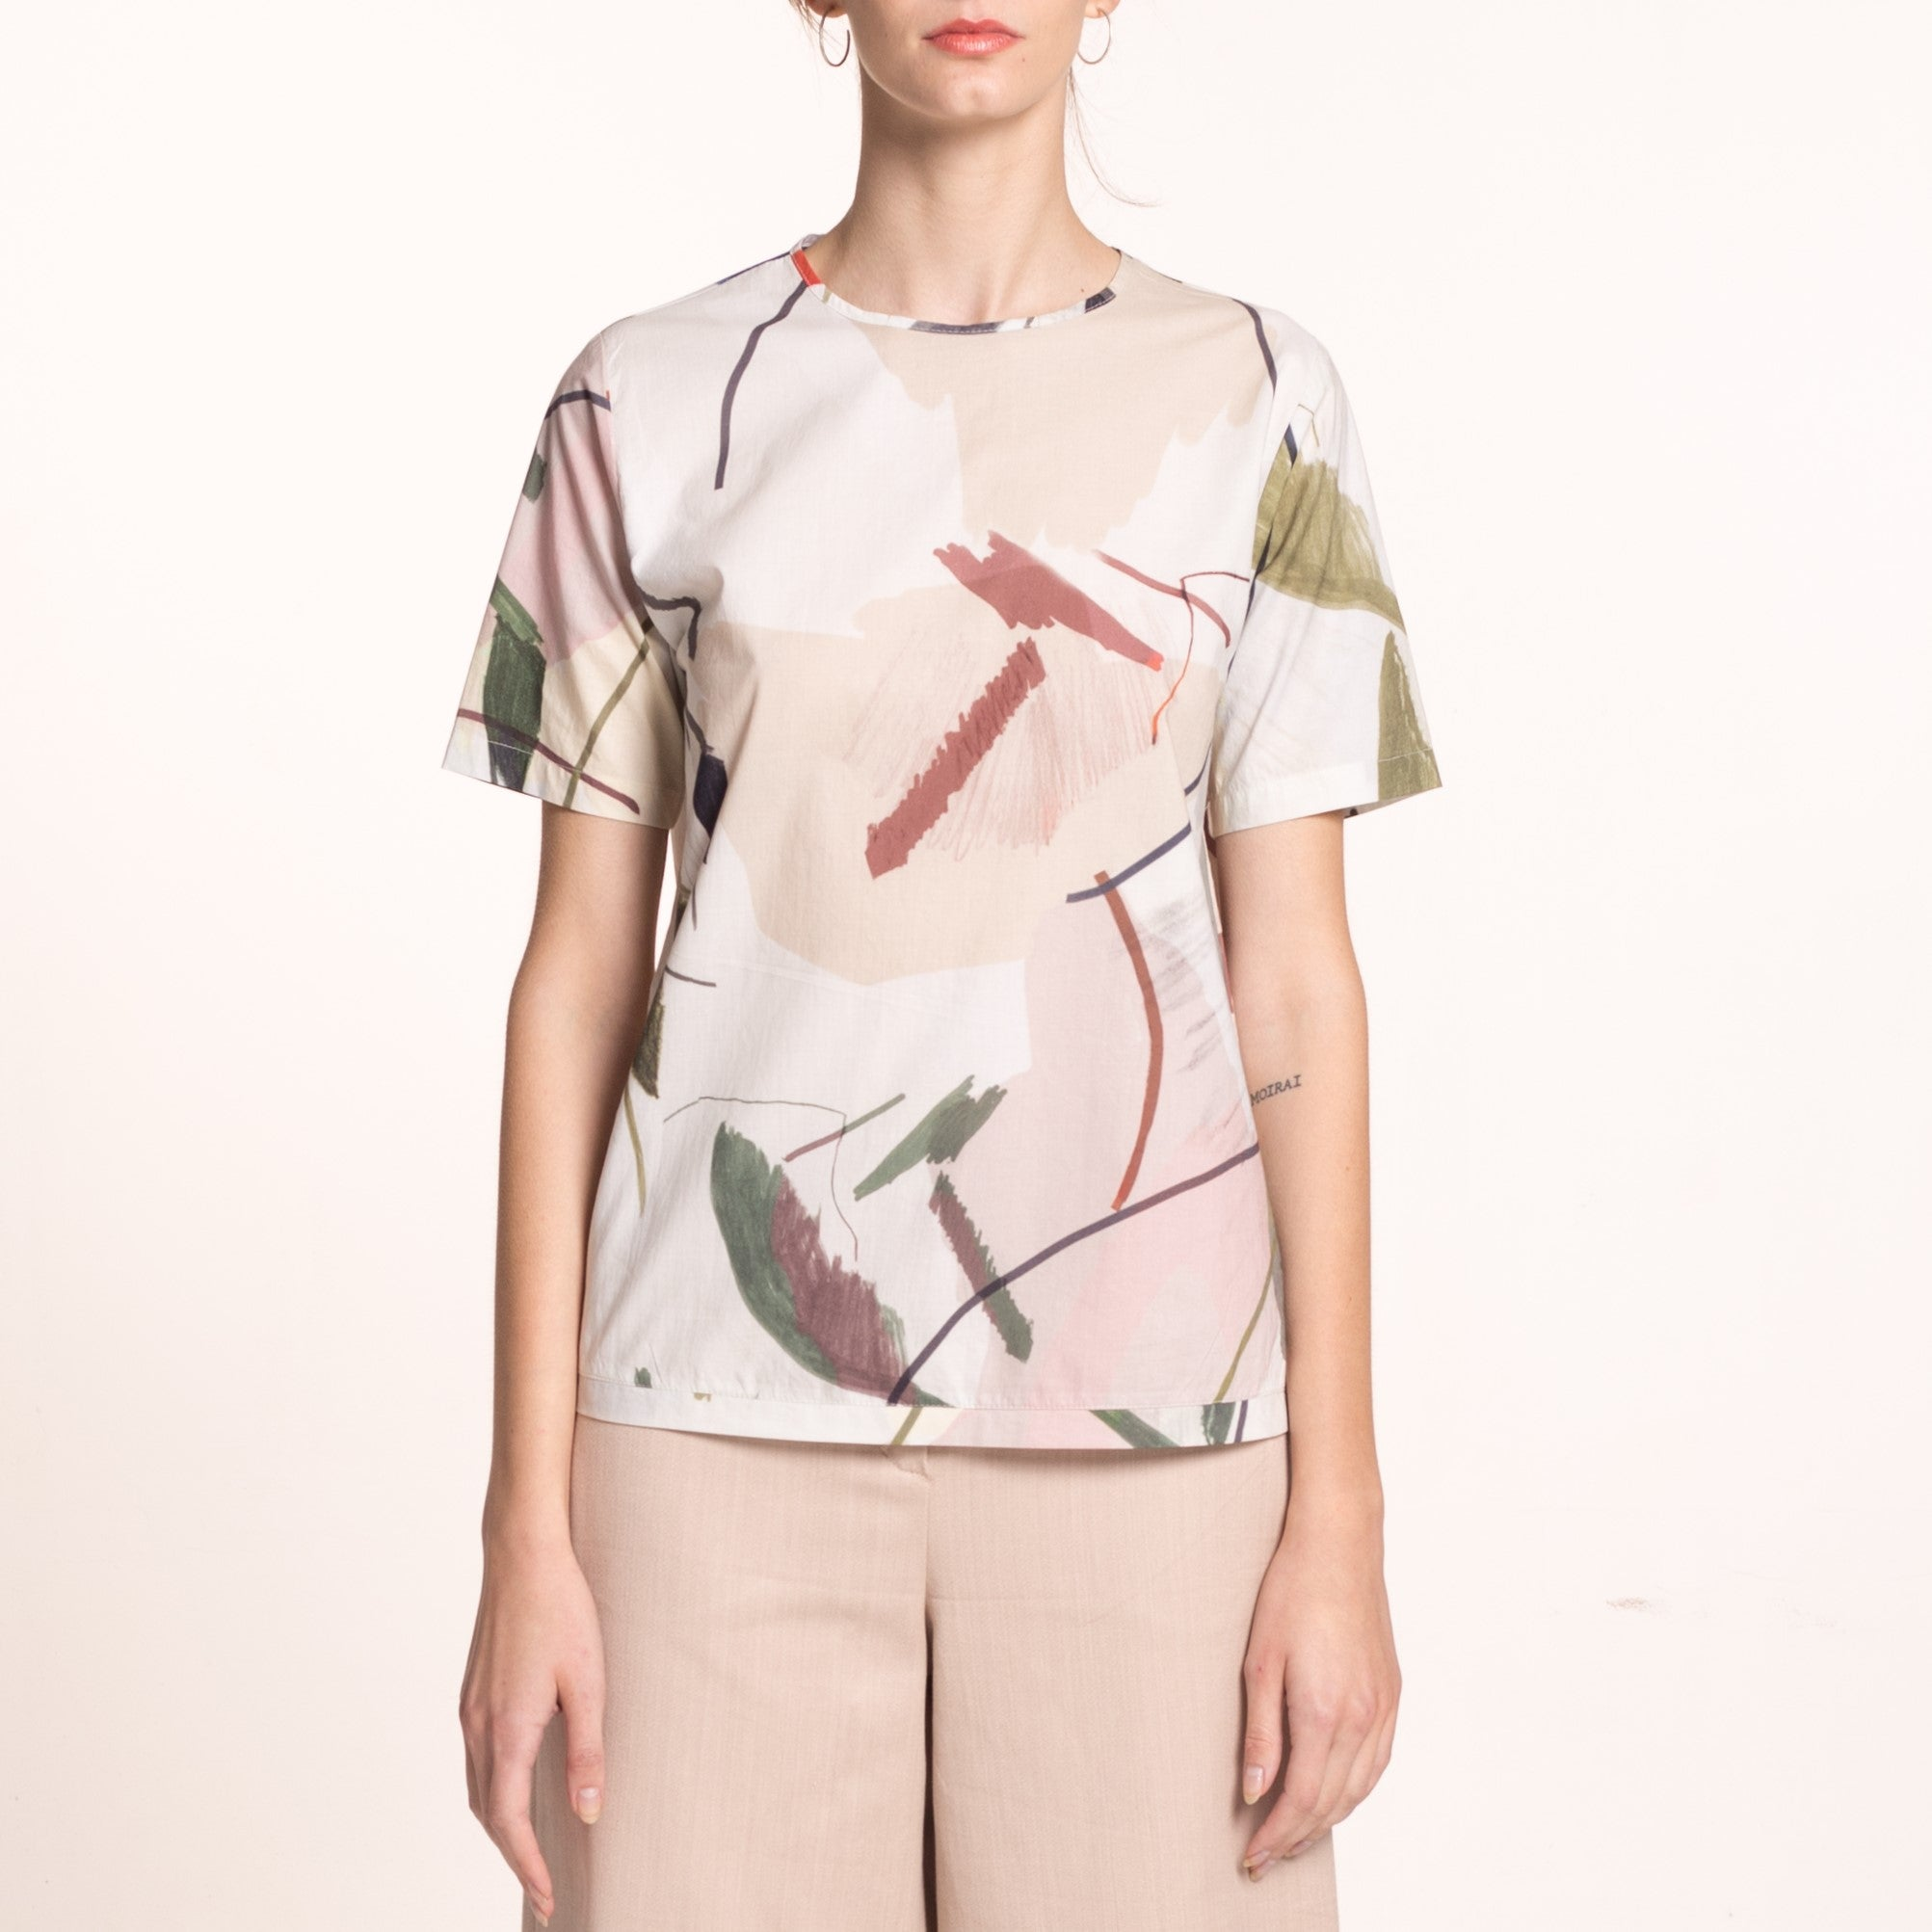 The model wears a sustainable, organic cotton, short sleeved blouse with round neckline and printed beige fabric with coloful shapes, close up.